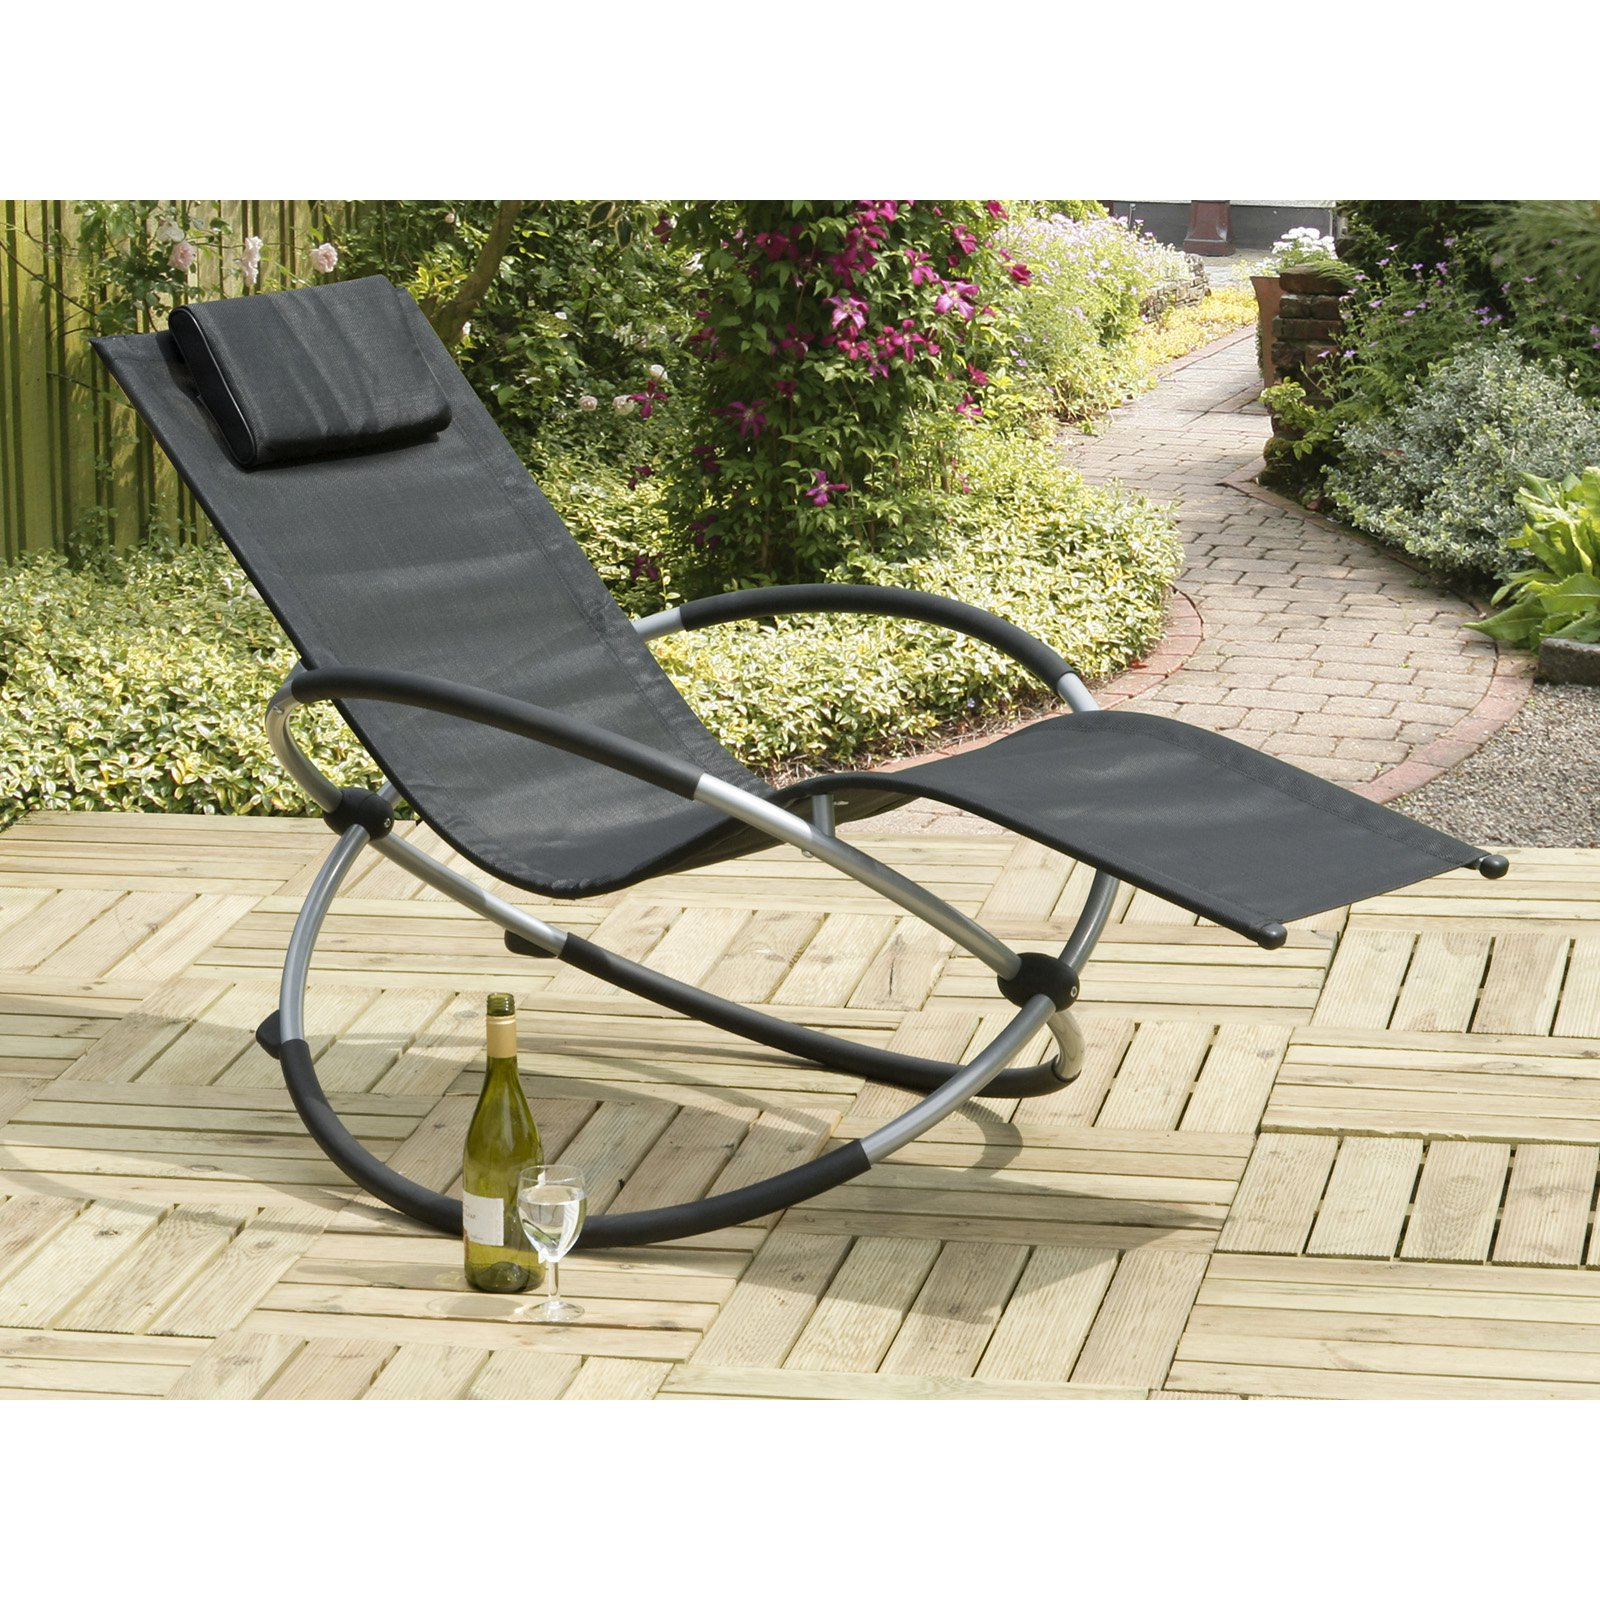 Orbit Relaxer Black Rocking Steel Chair